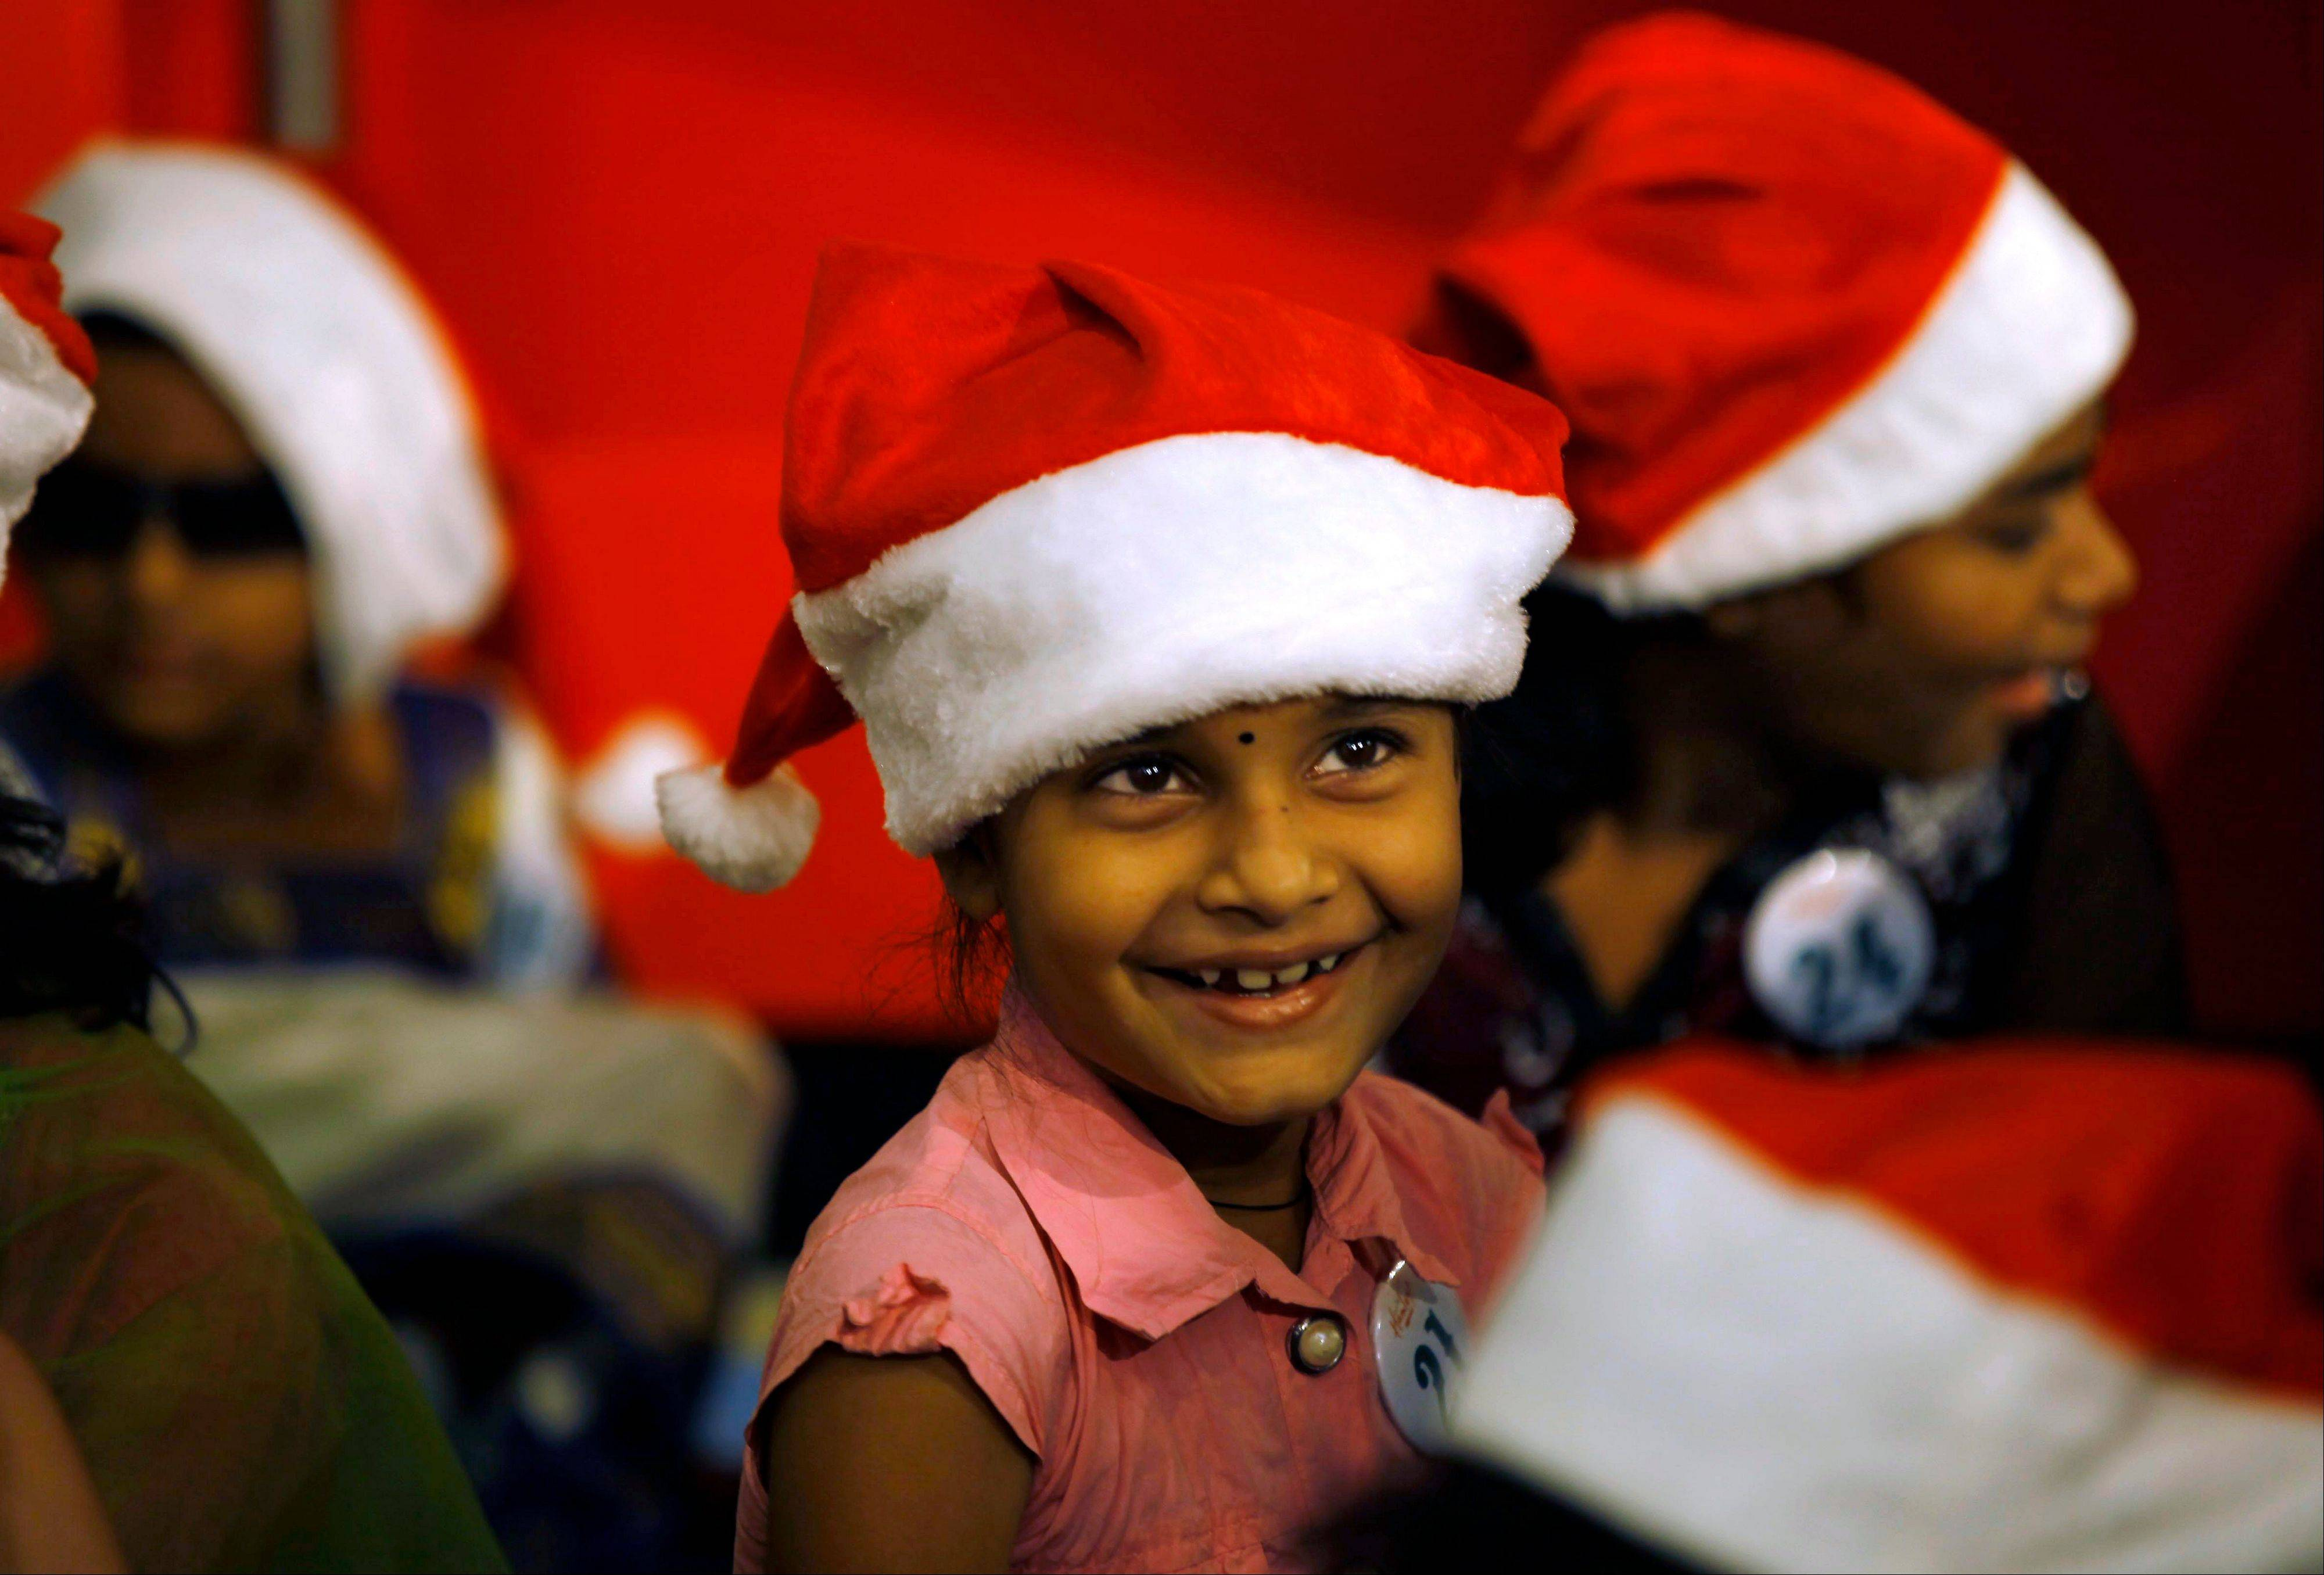 Special needs children take part in a Christmas celebration in Mumbai, India, Monday, Dec. 24, 2012. Although Christians comprise only two percent of the population Christmas is a national holiday and is observed across the country as an occasion to celebrate.